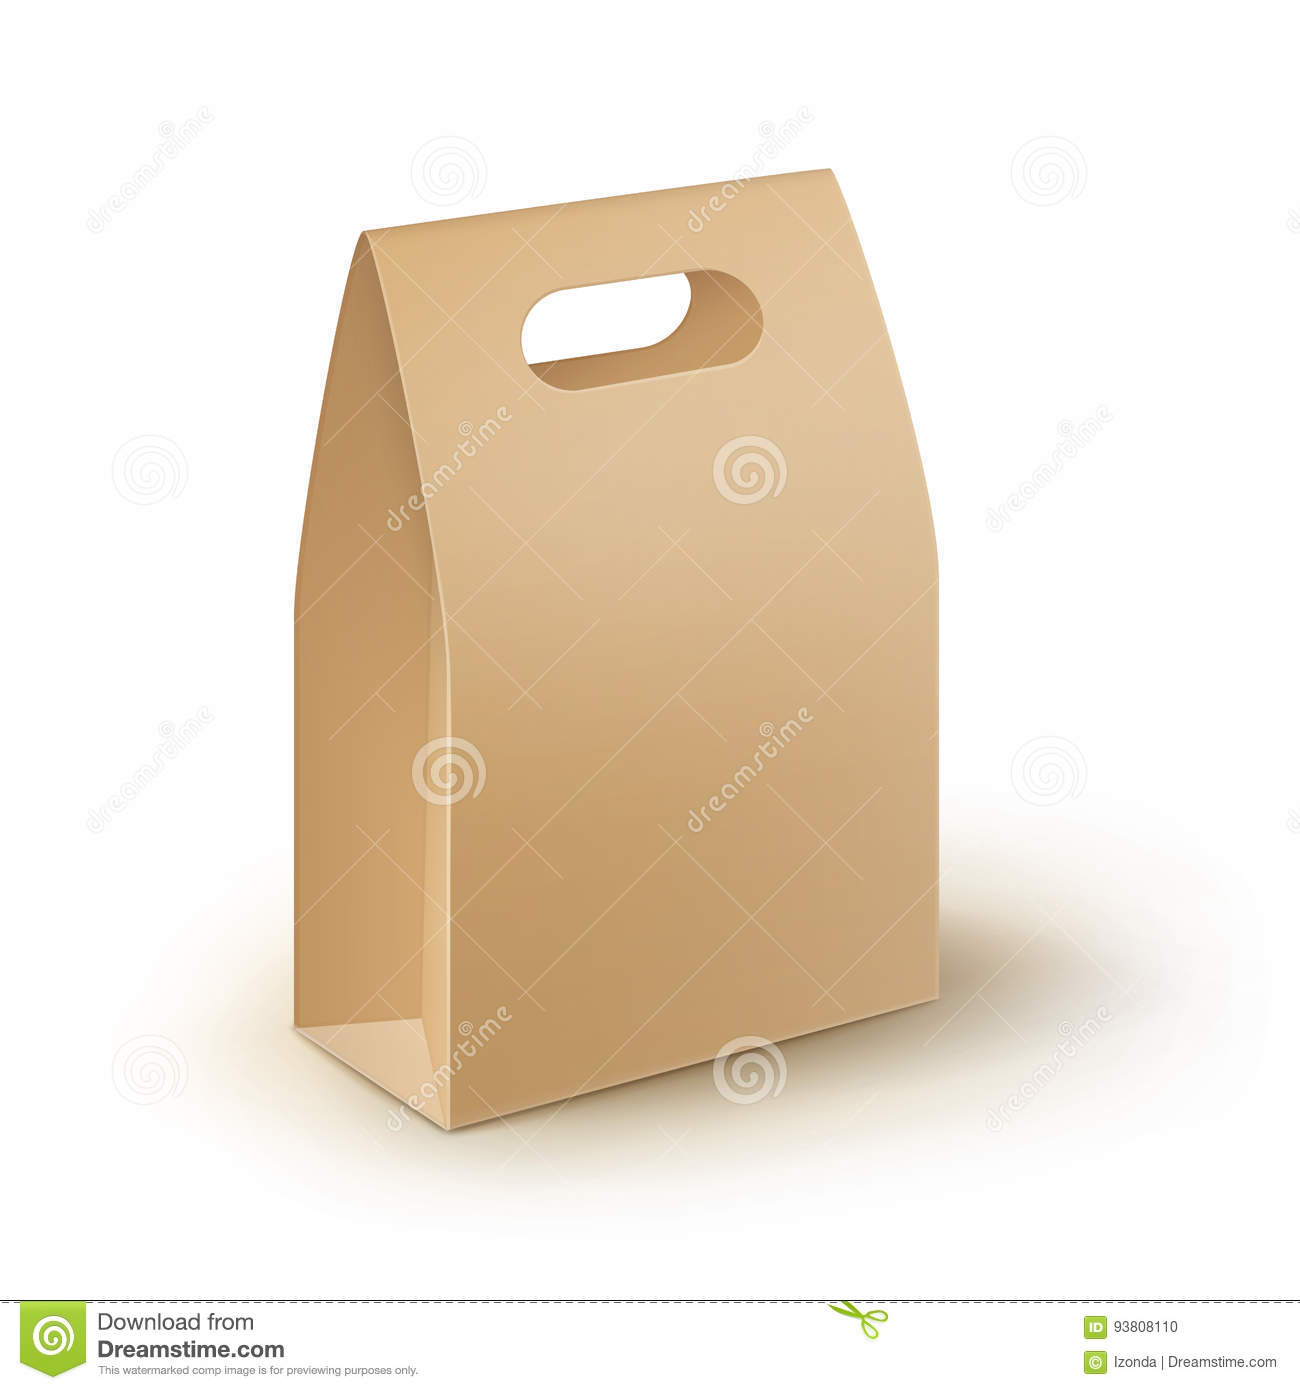 Vector Brown Blank Cardboard Rectangle Take Away Handle Lunch Box Packaging For Sandwich, Food, Gift, Other Products